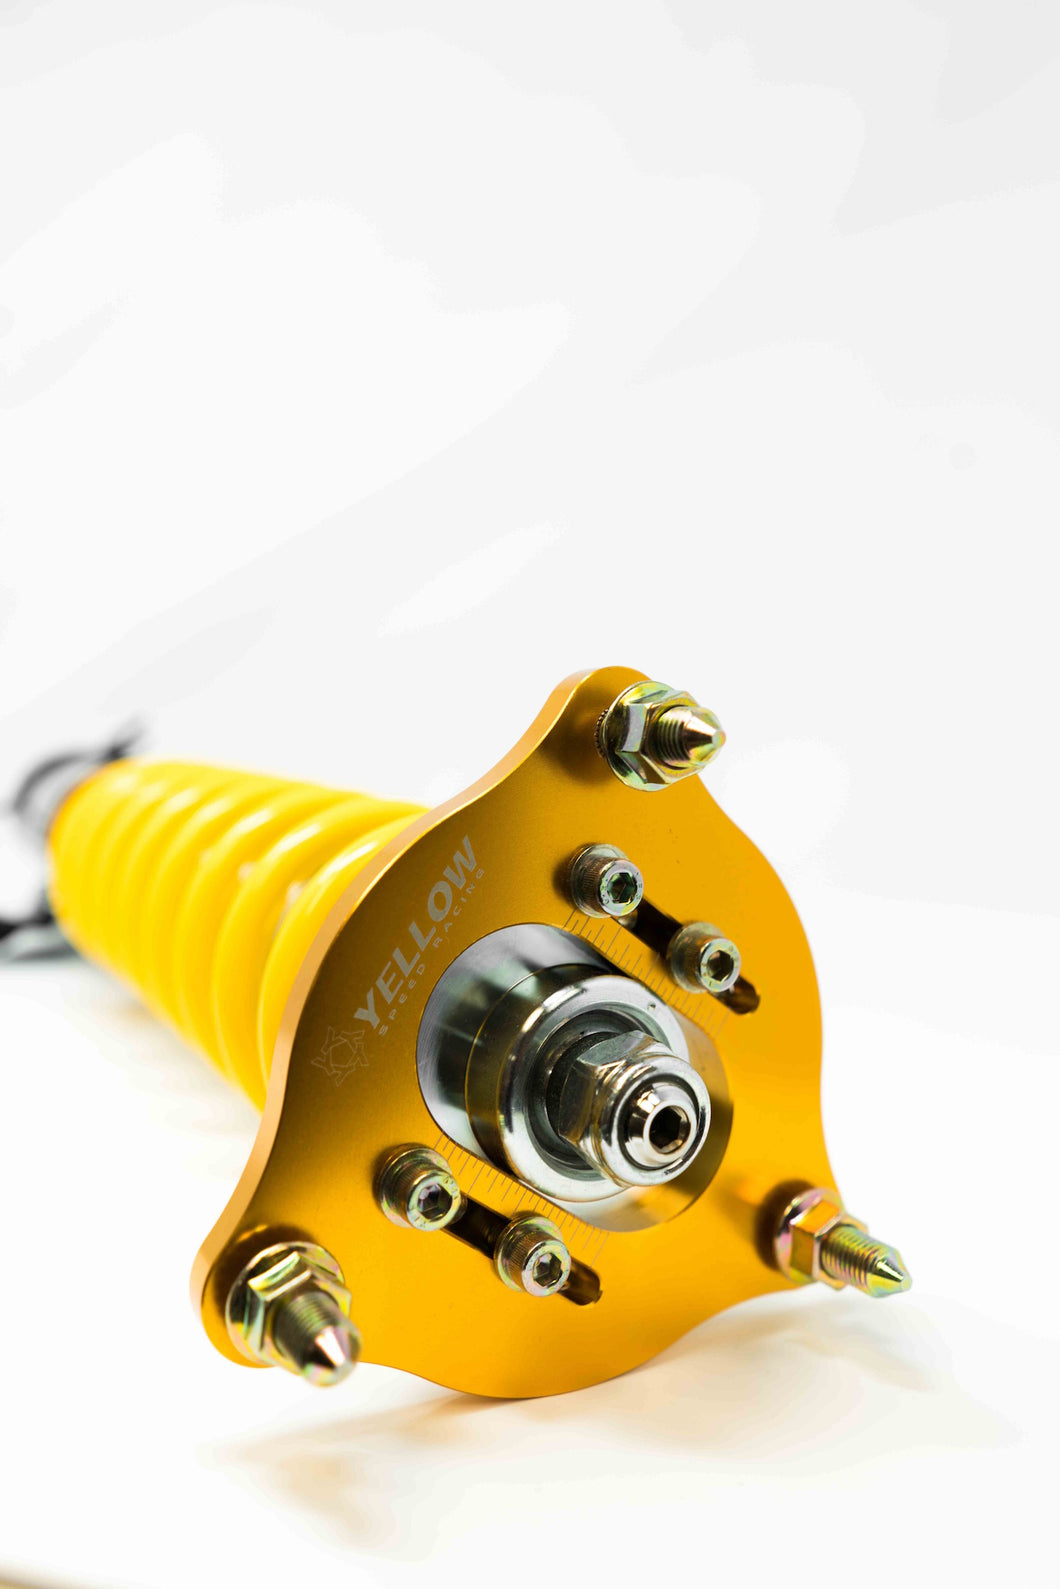 Dynamic Pro Gravel Rally Coilovers 2008-2014 Subaru WRX STI Hatchback (GR) for $1699.00 at Yellow Speed Racing, USA